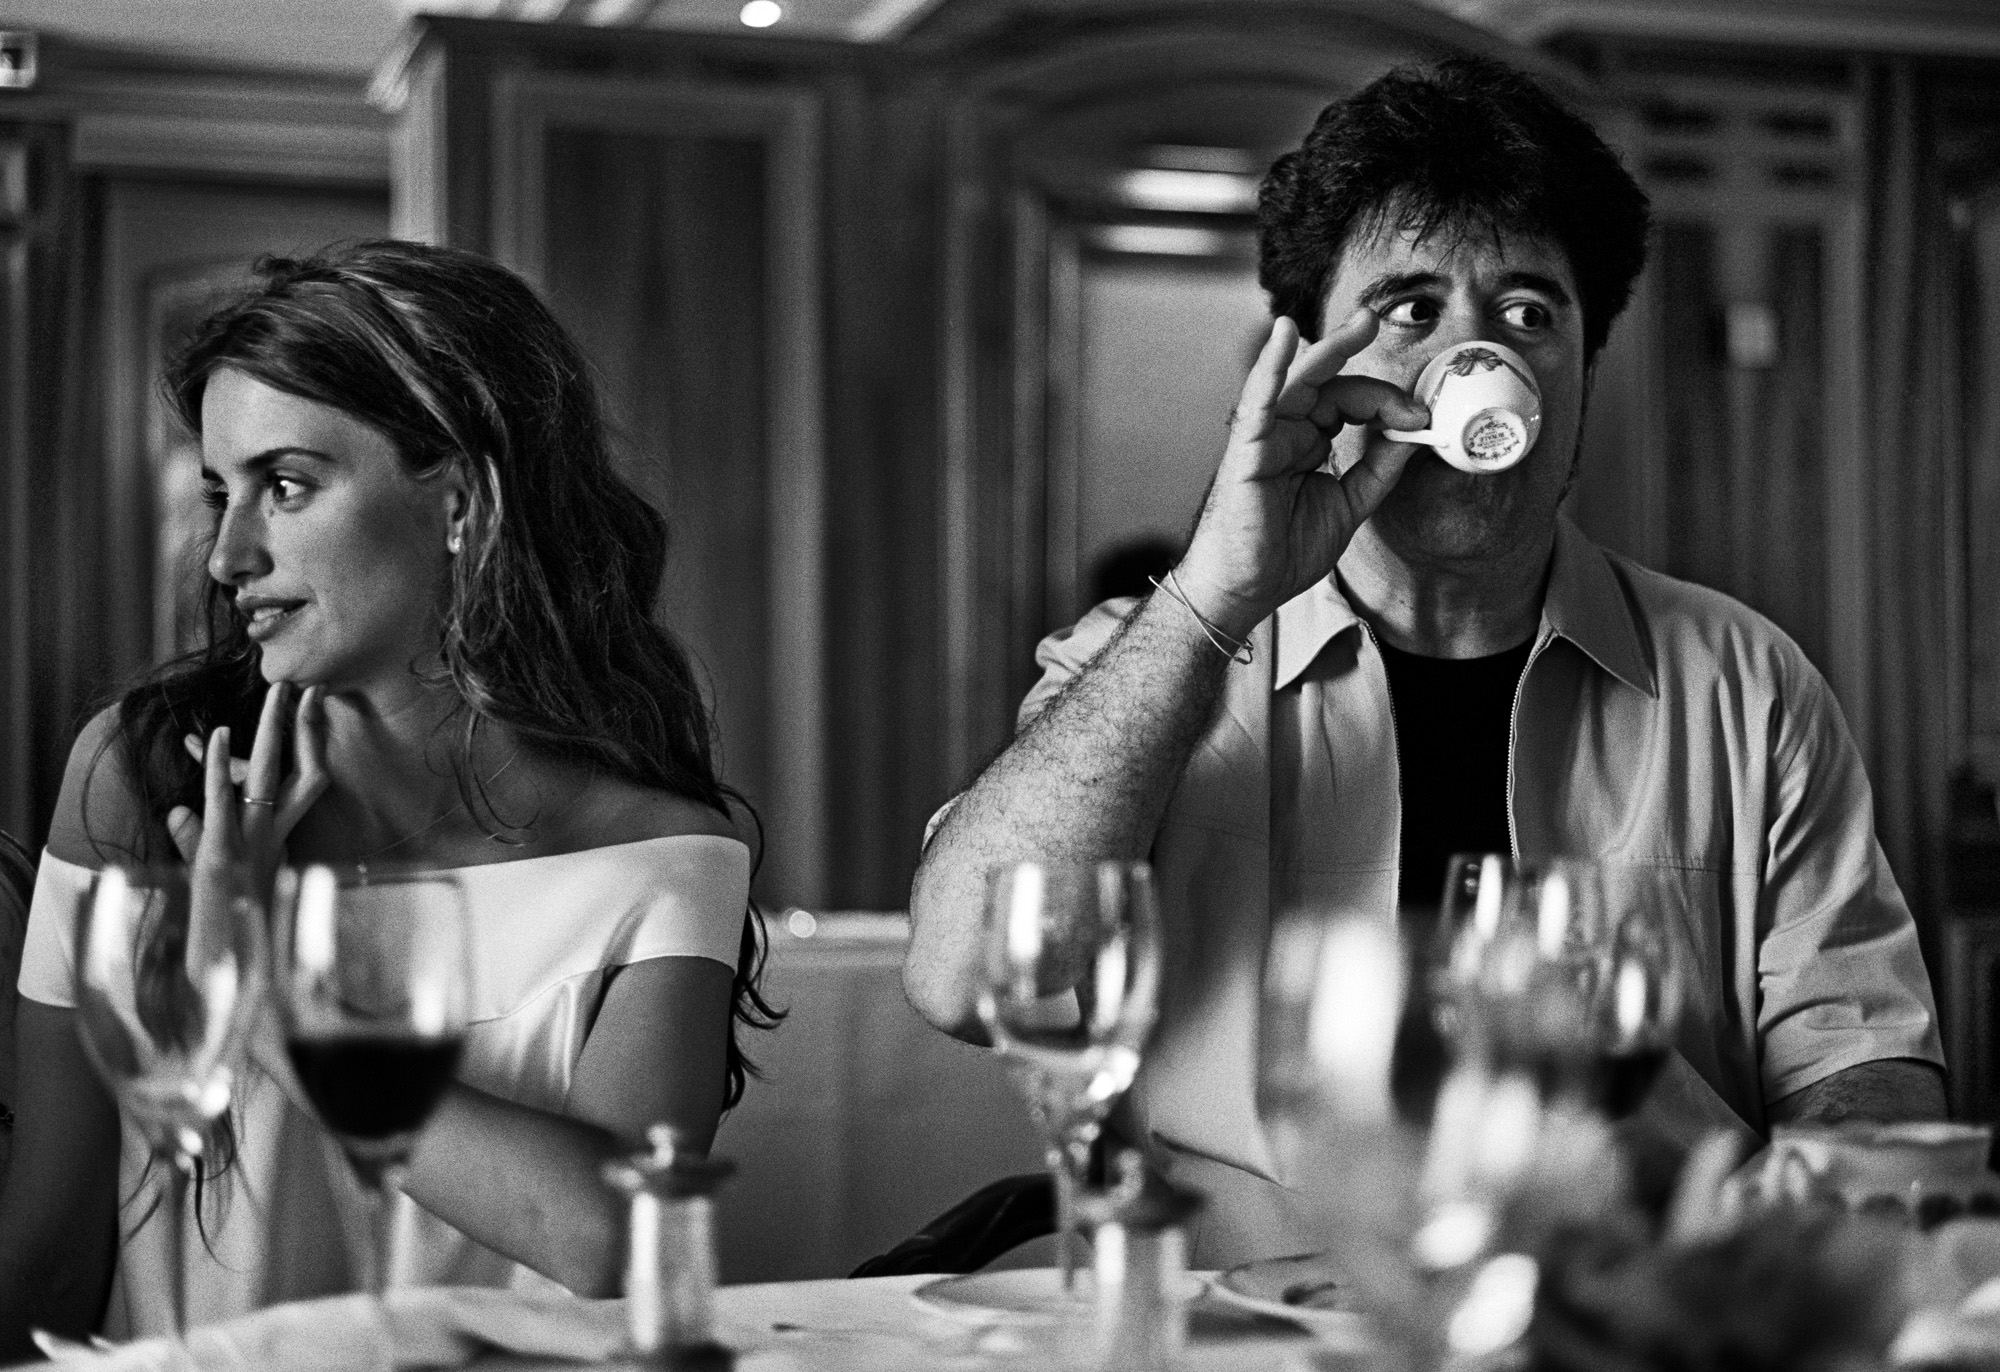 Penélope Cruz and Pedro Almodóvar sip tea during the 1999 Cannes Film Festival, where Pedro Almodóvar won the Palme for Best Director with...